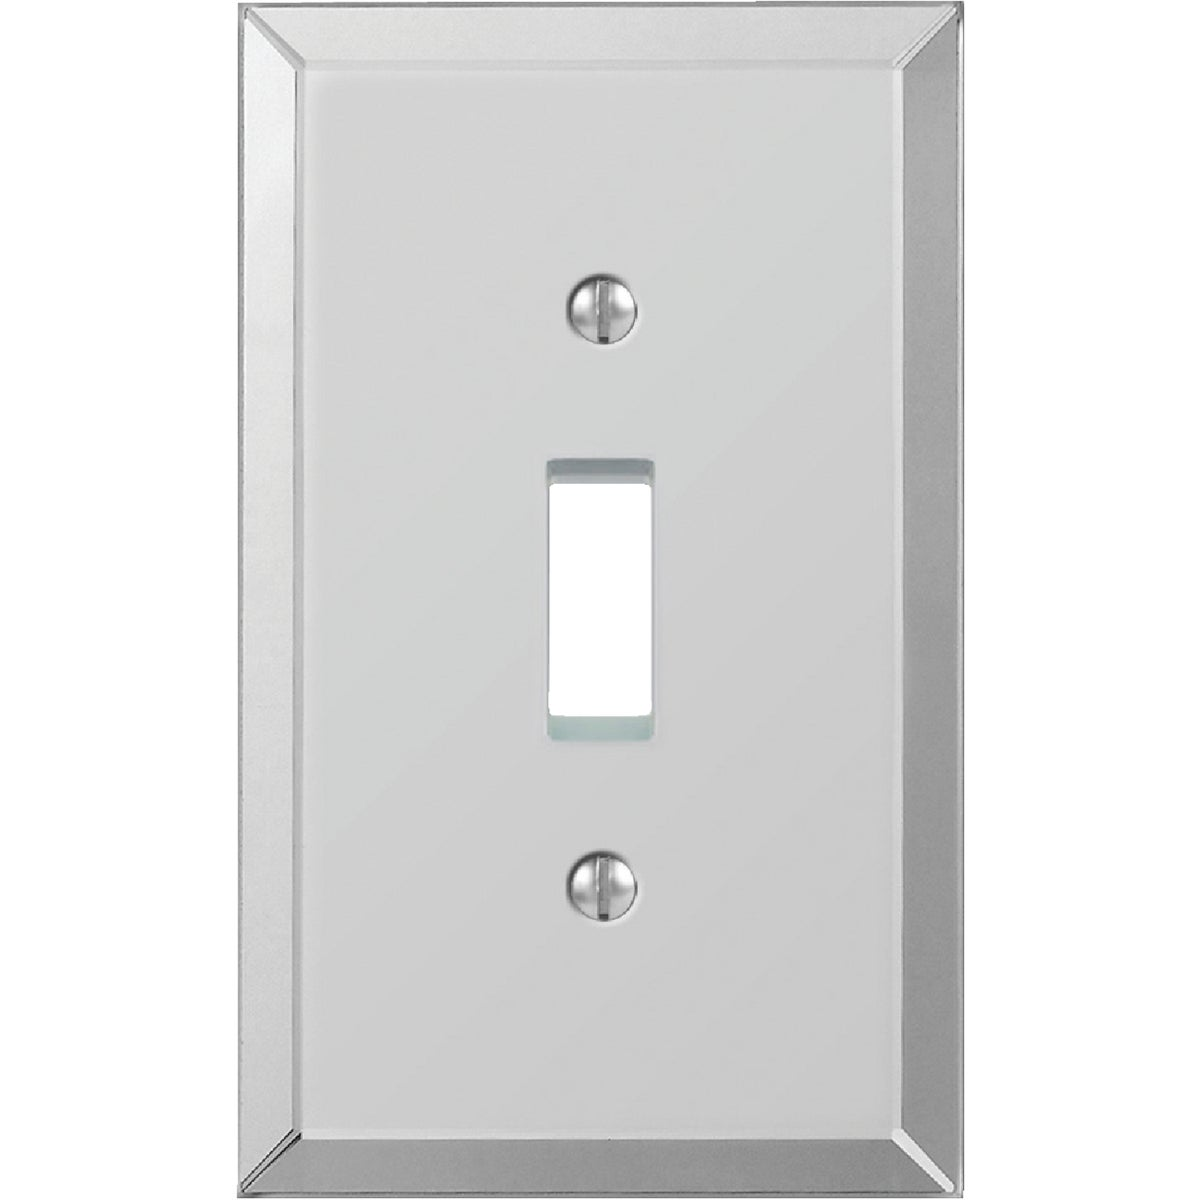 Amerelle Acrylic Switch Wall Plate